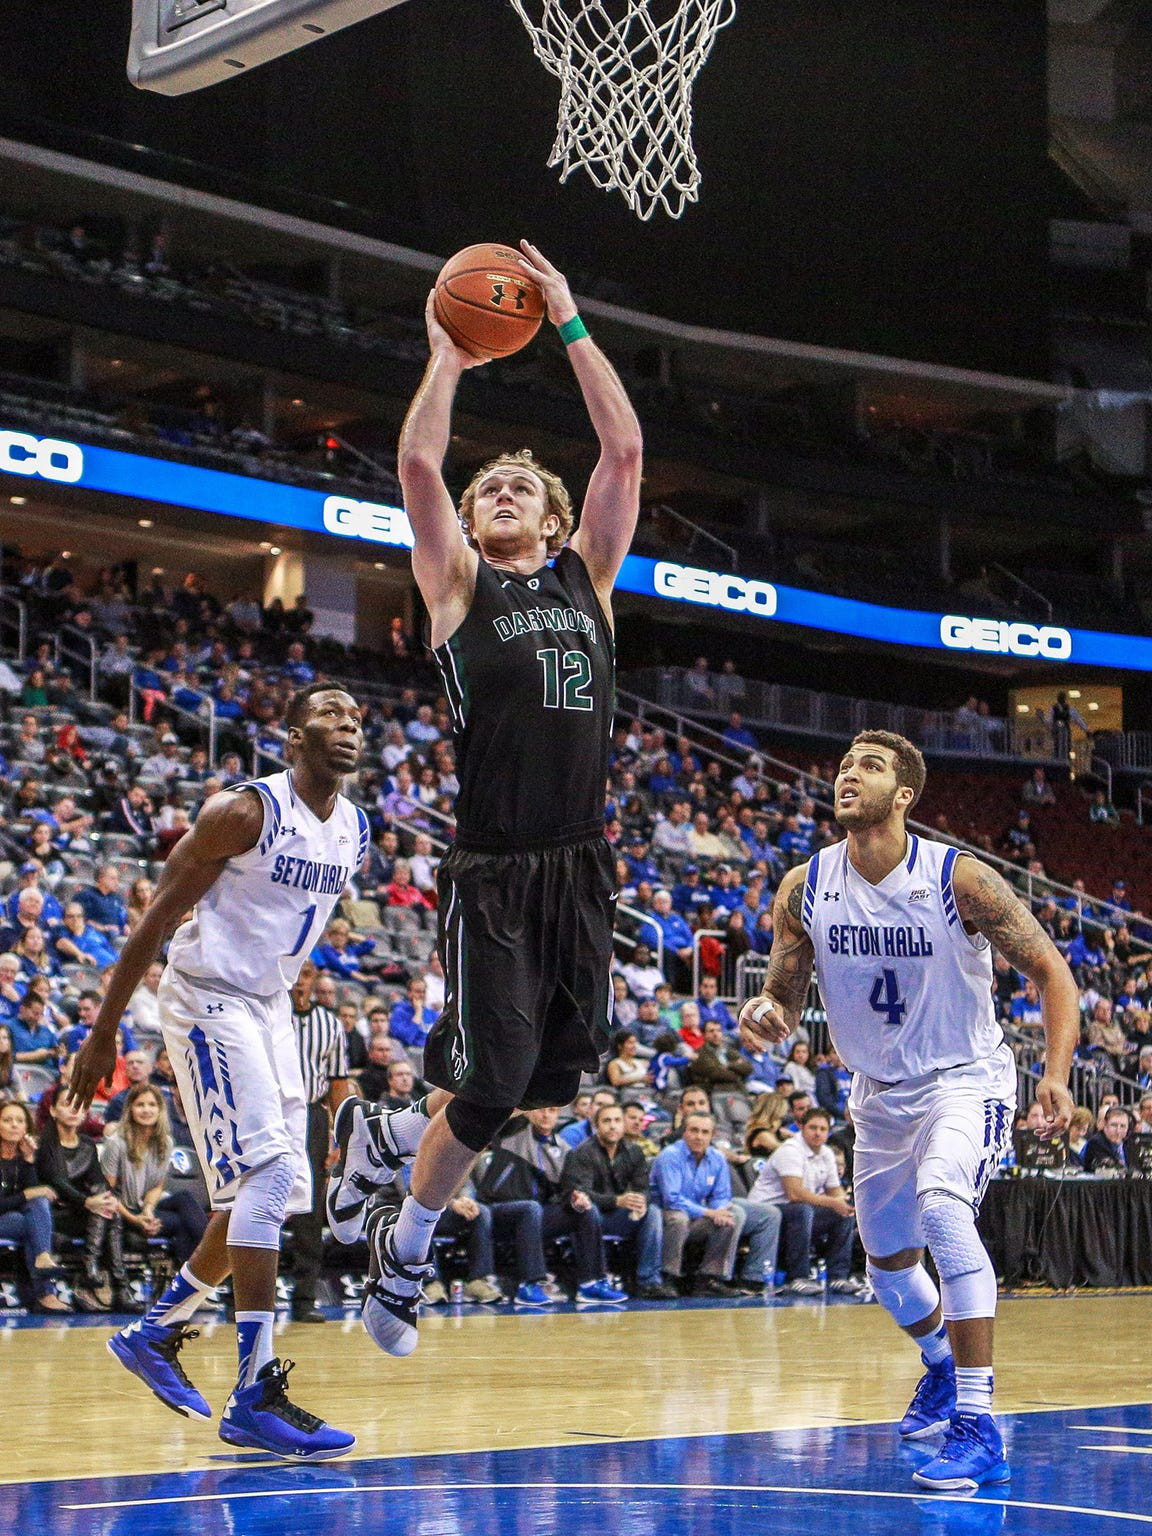 Incoming Purdue graduate transfer Evan Boudreaux initially